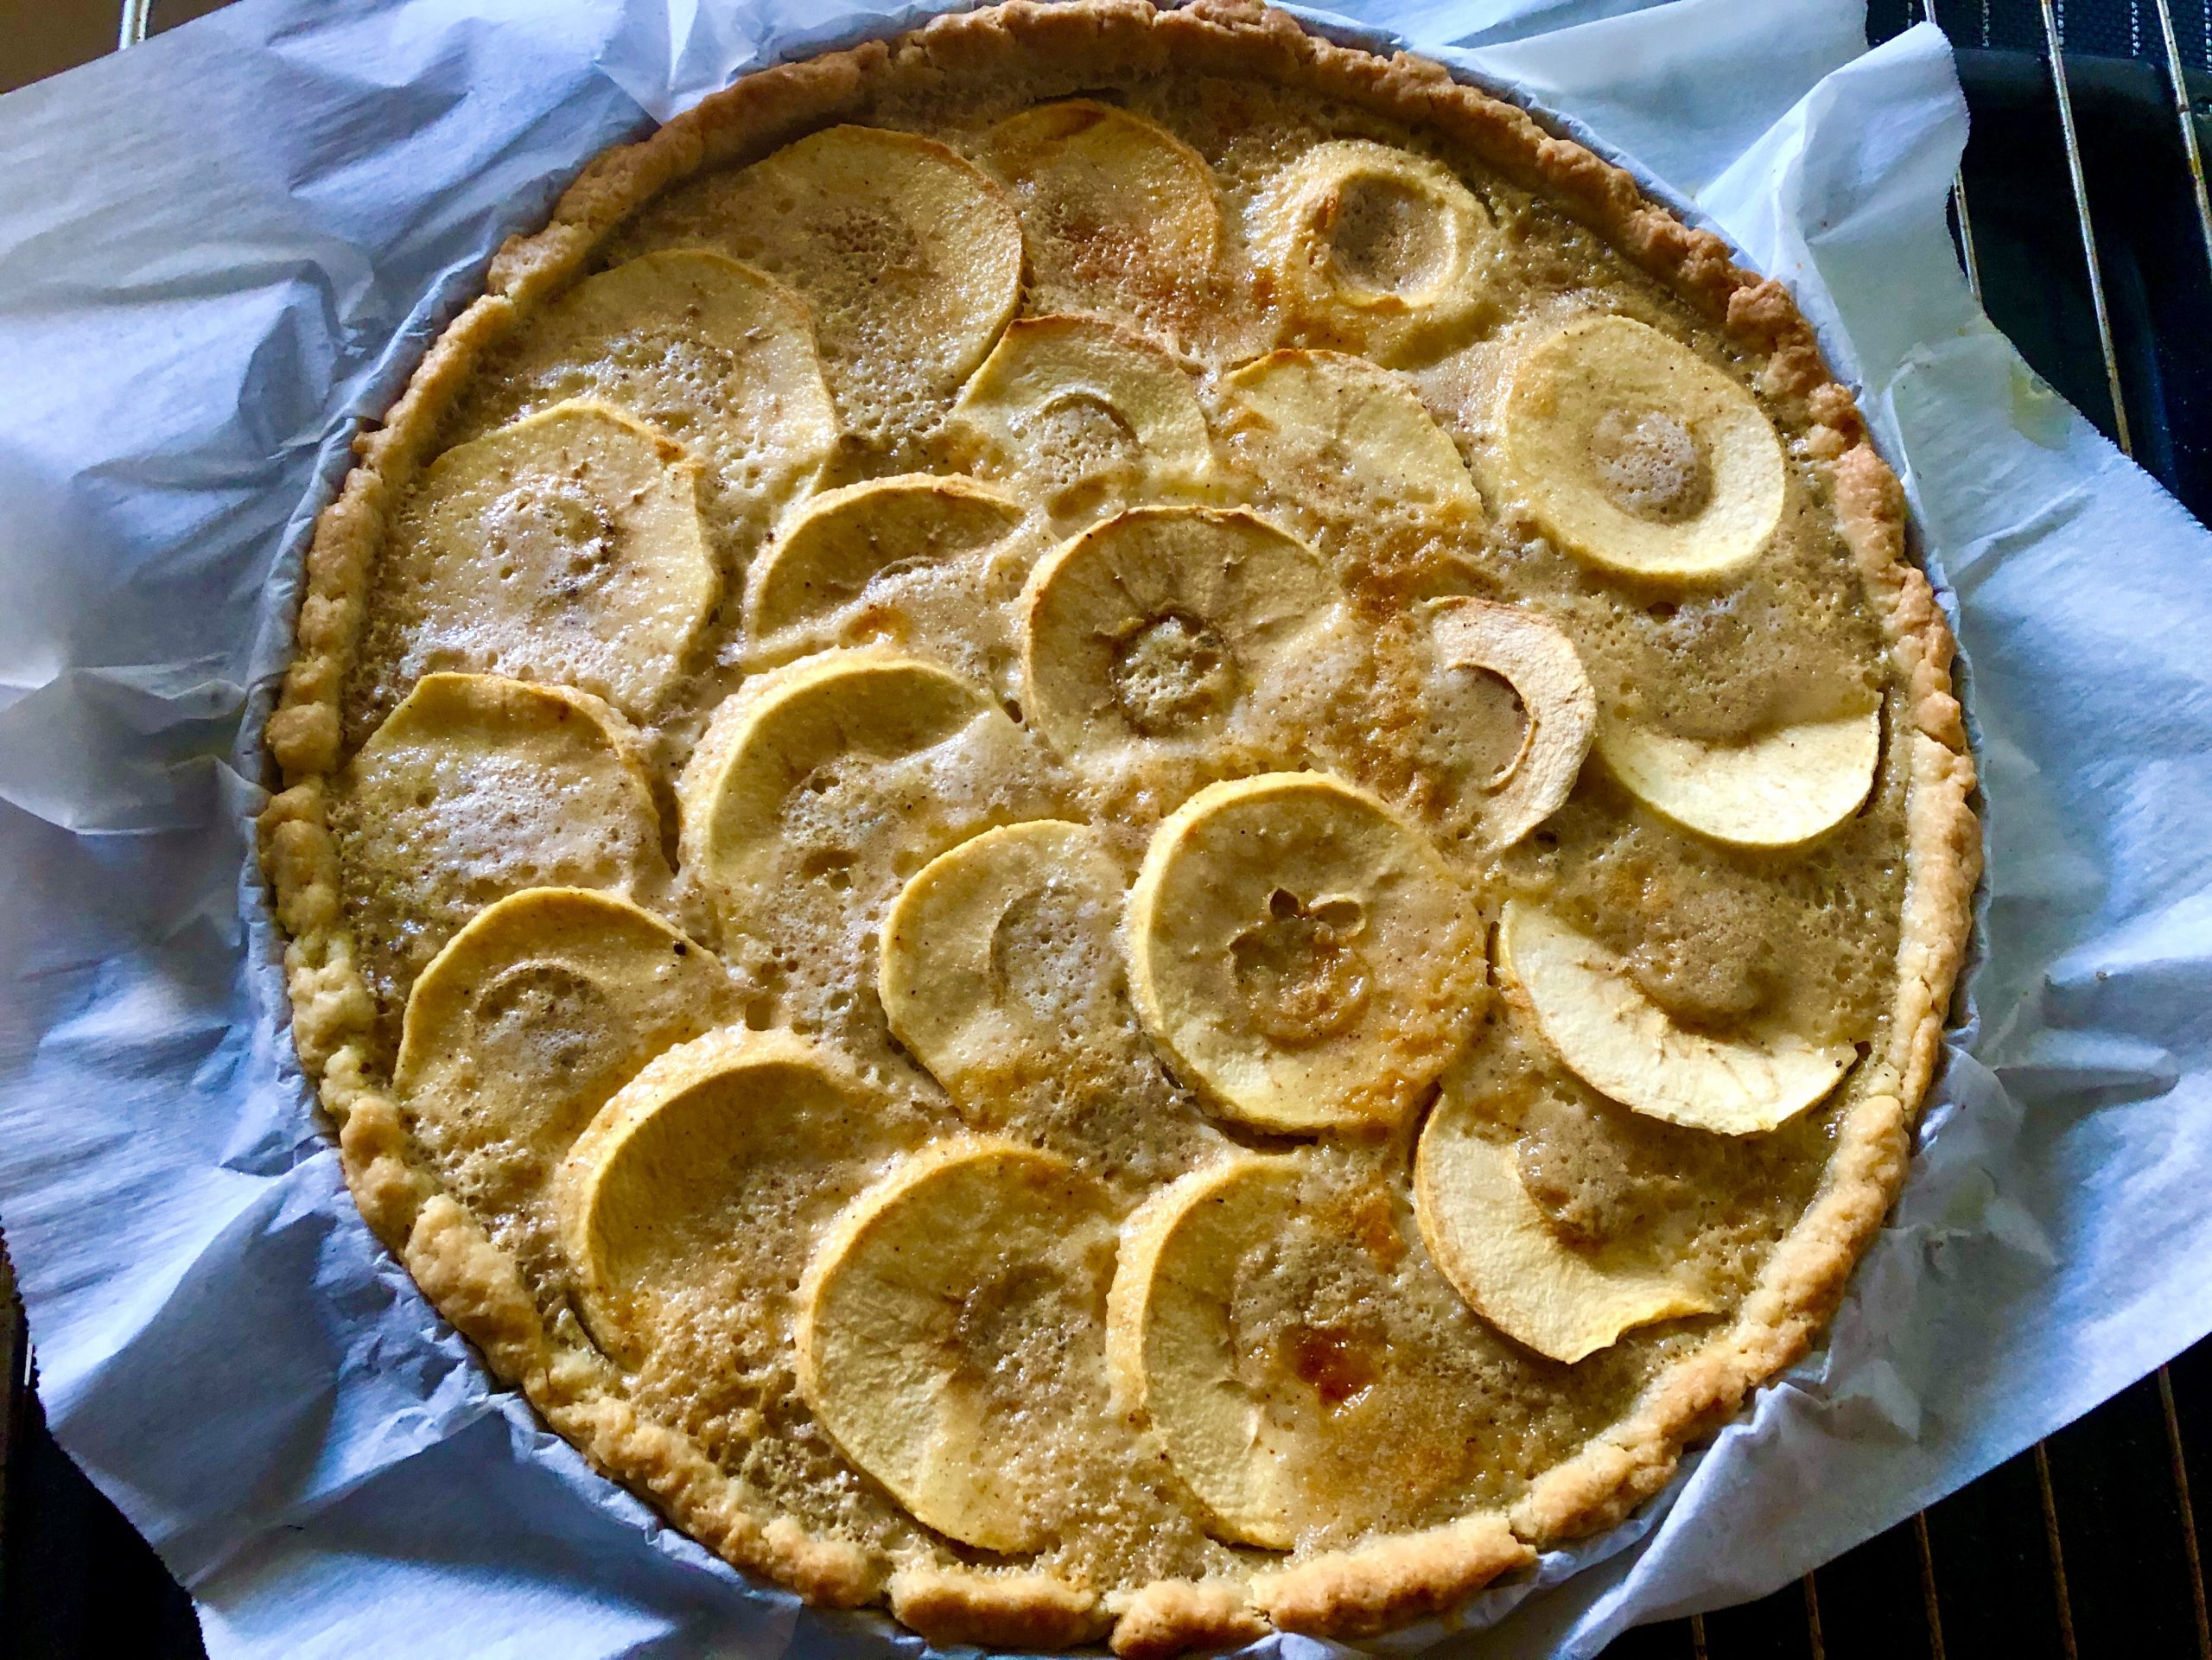 Tarte Normande (Normandy Apple Tart)